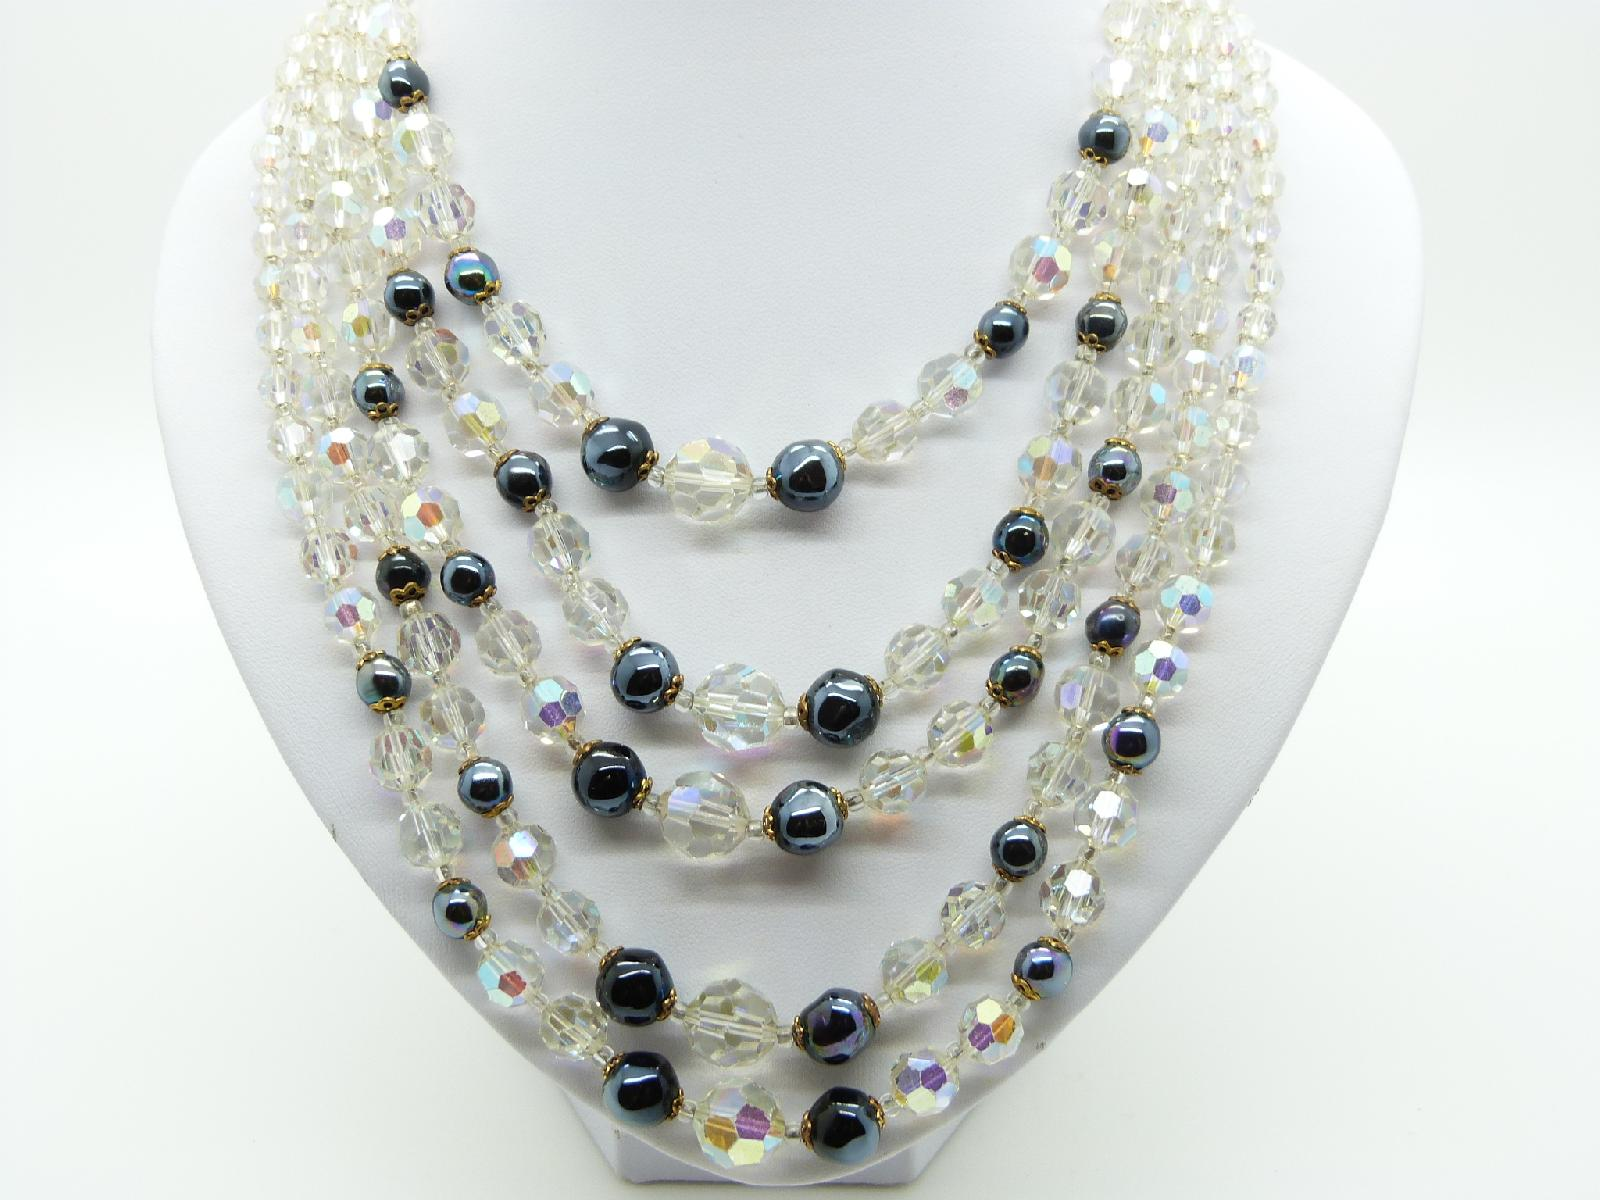 £75.00 - Vintage 50s Breathtaking 5 Row AB Crystal Glass and Hematite Bead Necklace